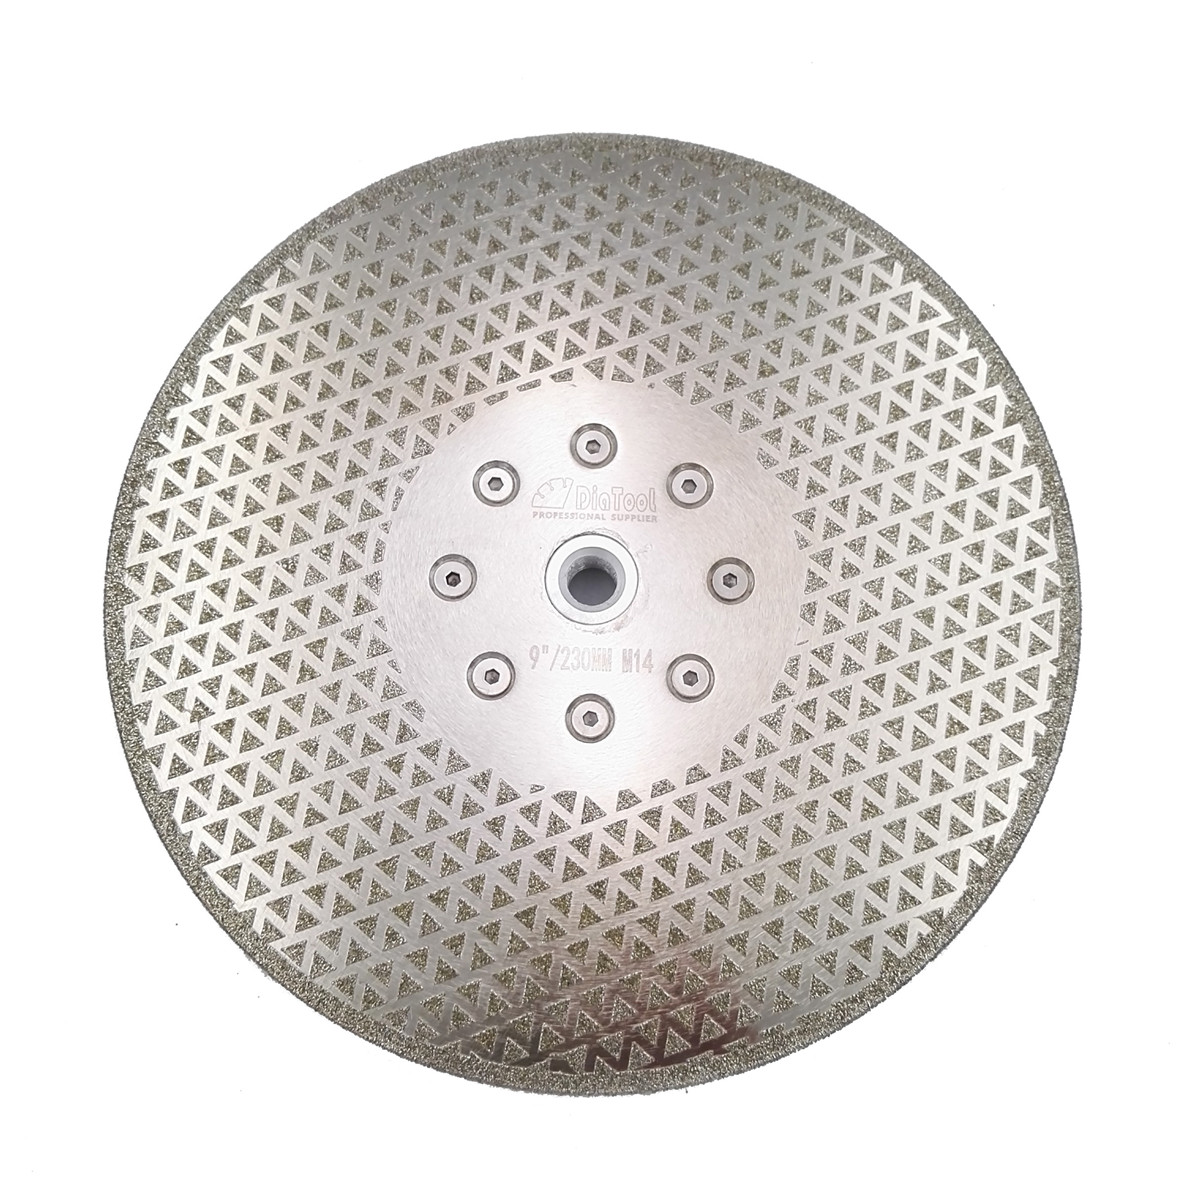 цена на DIATOOL 230mm Electroplated Diamond Cutting & Grinding Discs For Marble & Granite with M14 Flange